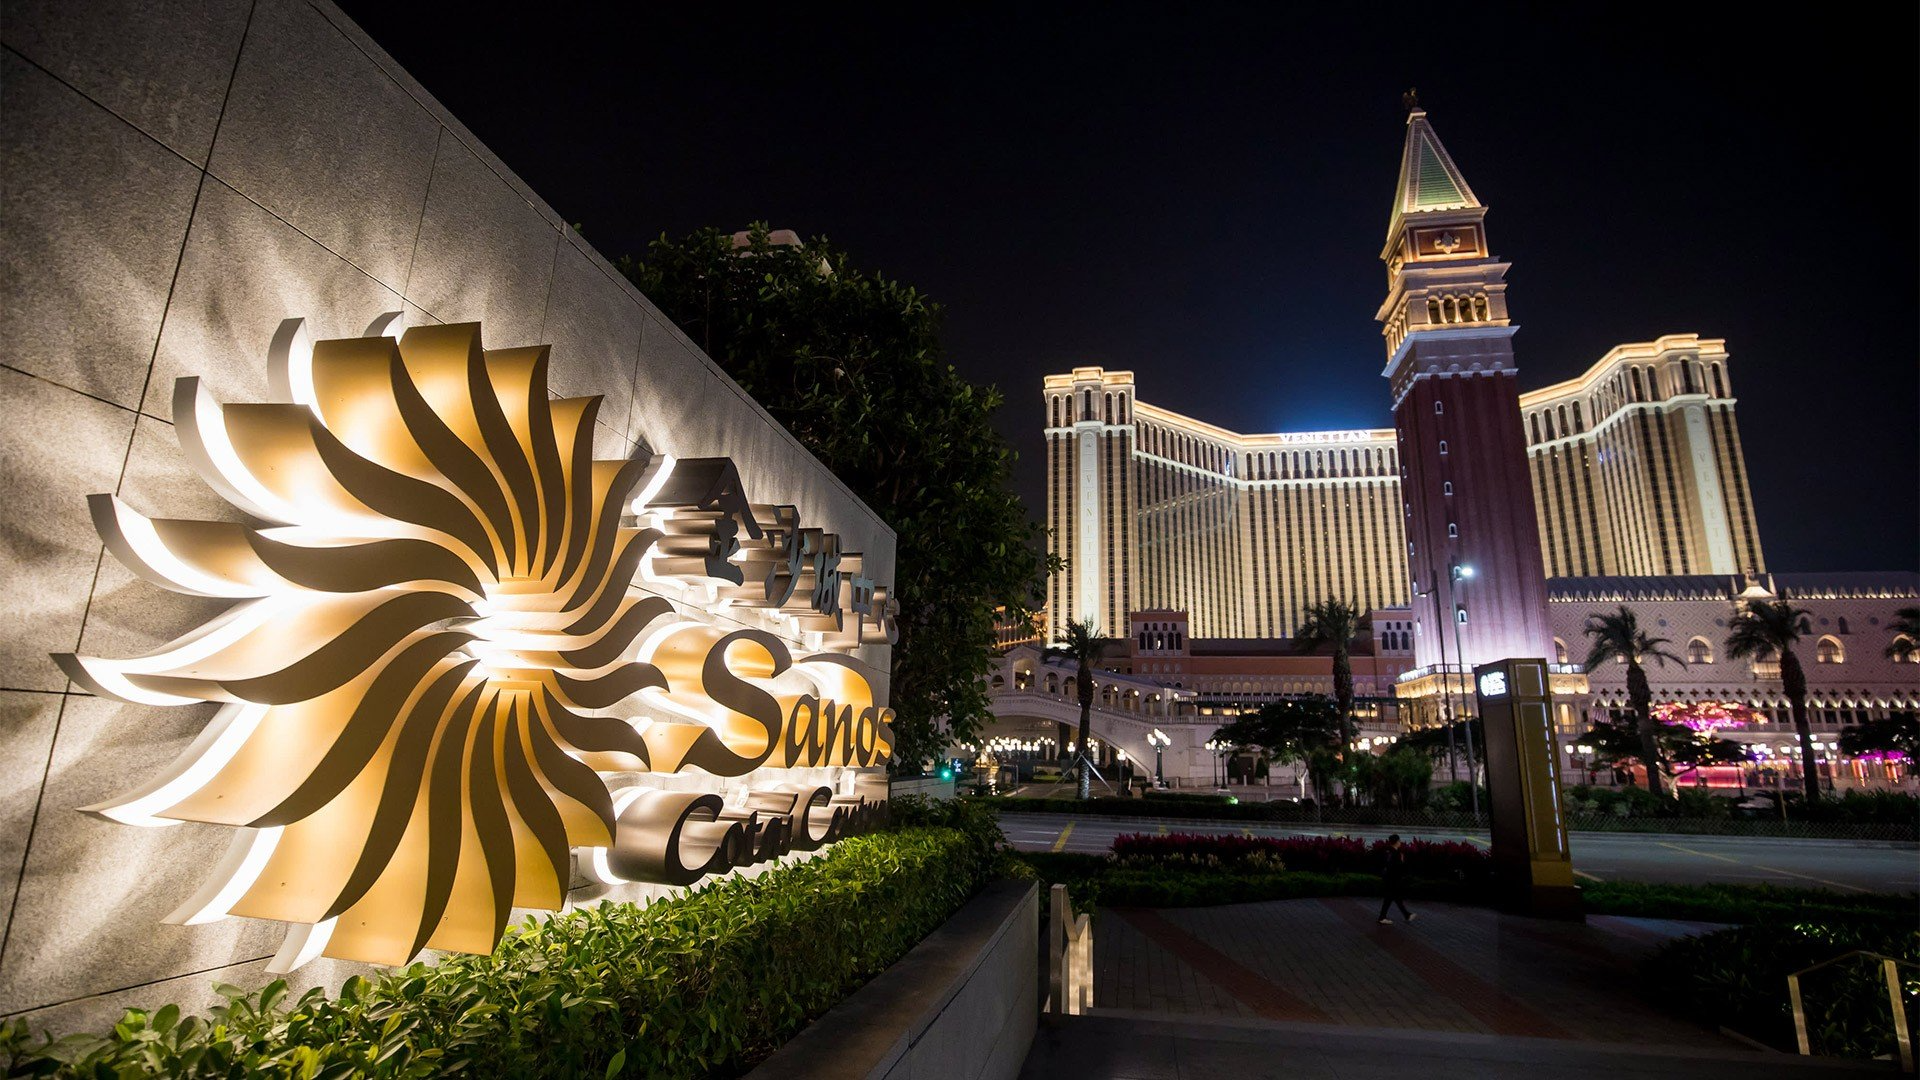 Las Vegas Sands Invests in Ad Campaign to Bring Casinos to Texas